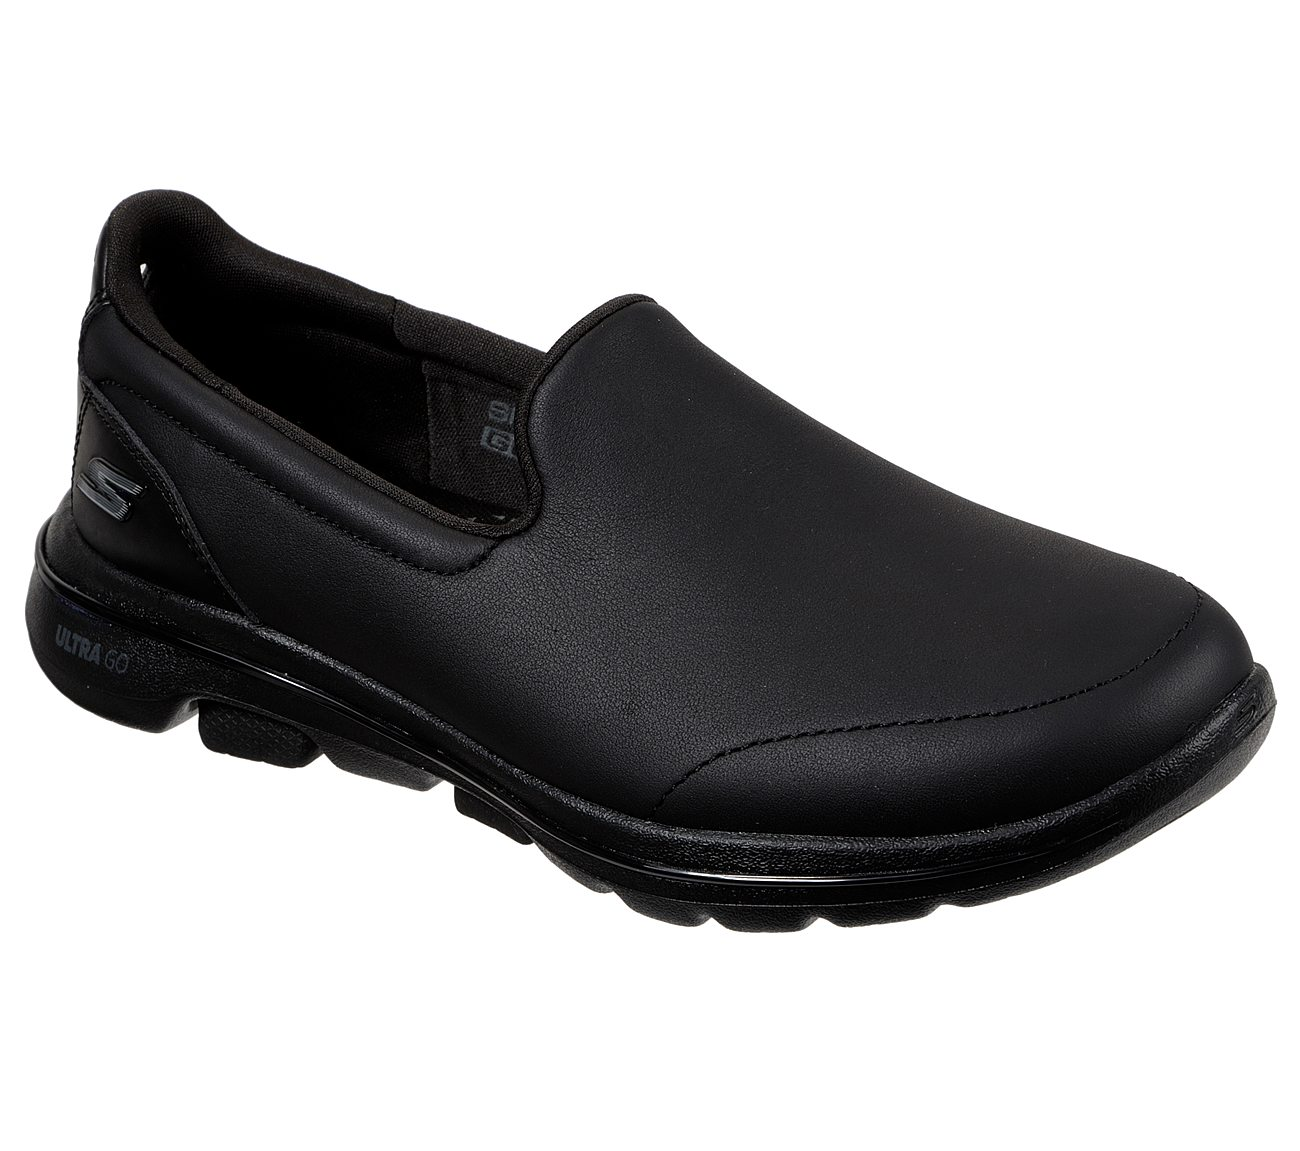 Polished Skechers Performance Shoes